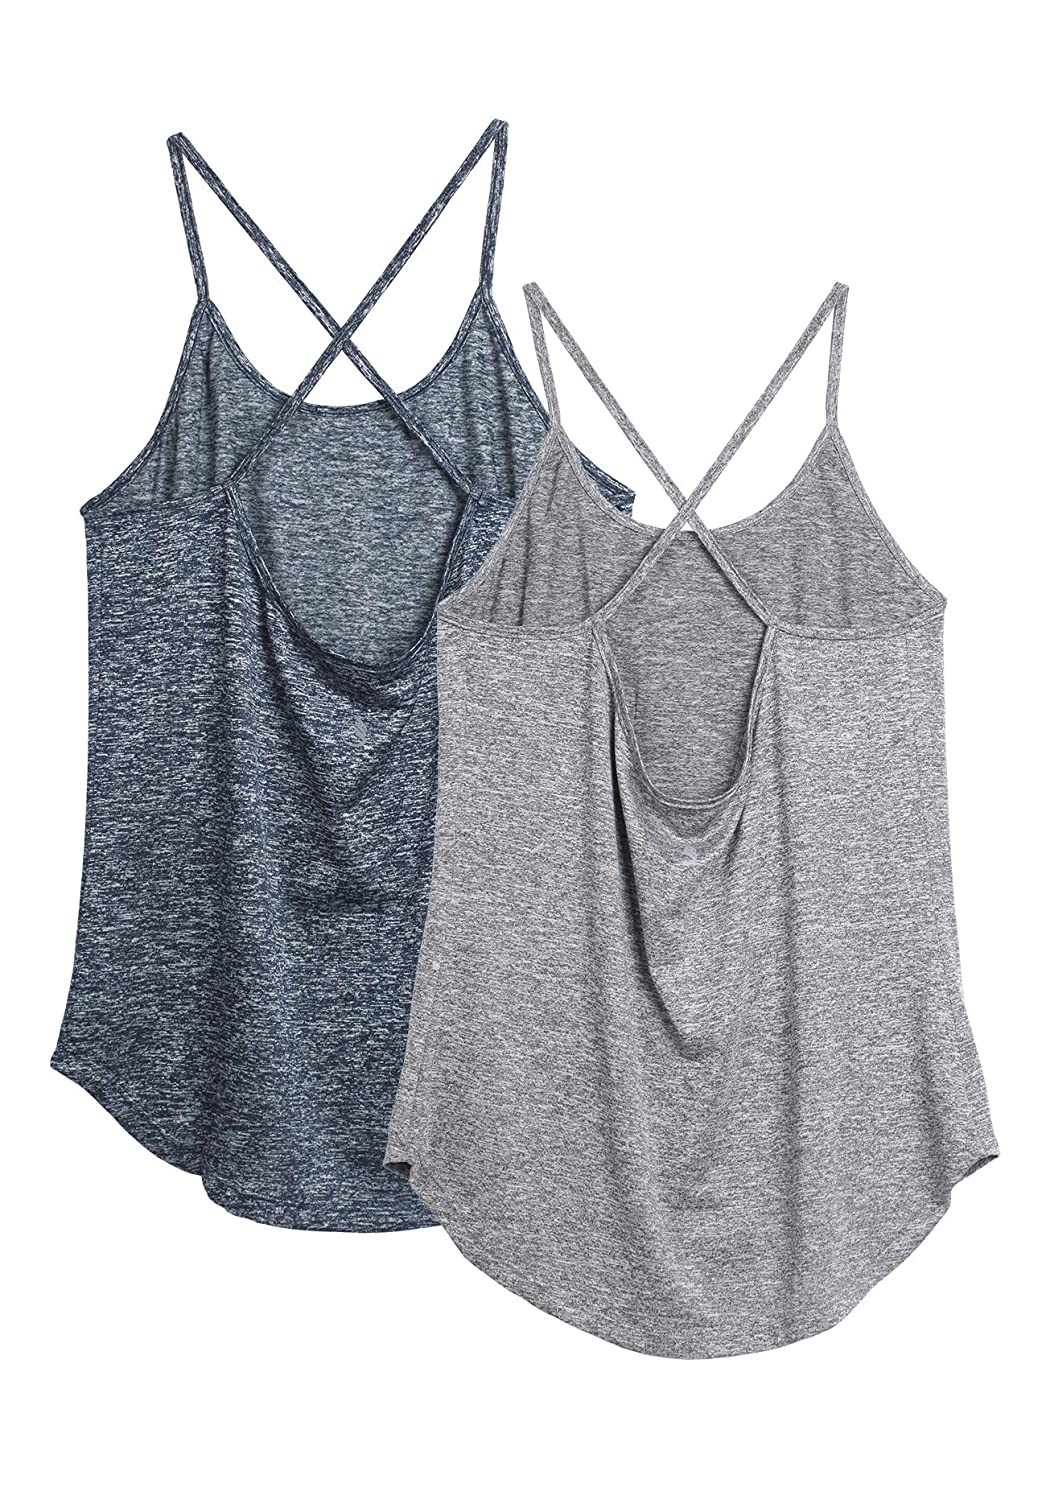 Athletic Shirts Running Sleeveless Tops Exercise Yoga Tank Pack of 2 icyzone Open Back Workout Tops for Women